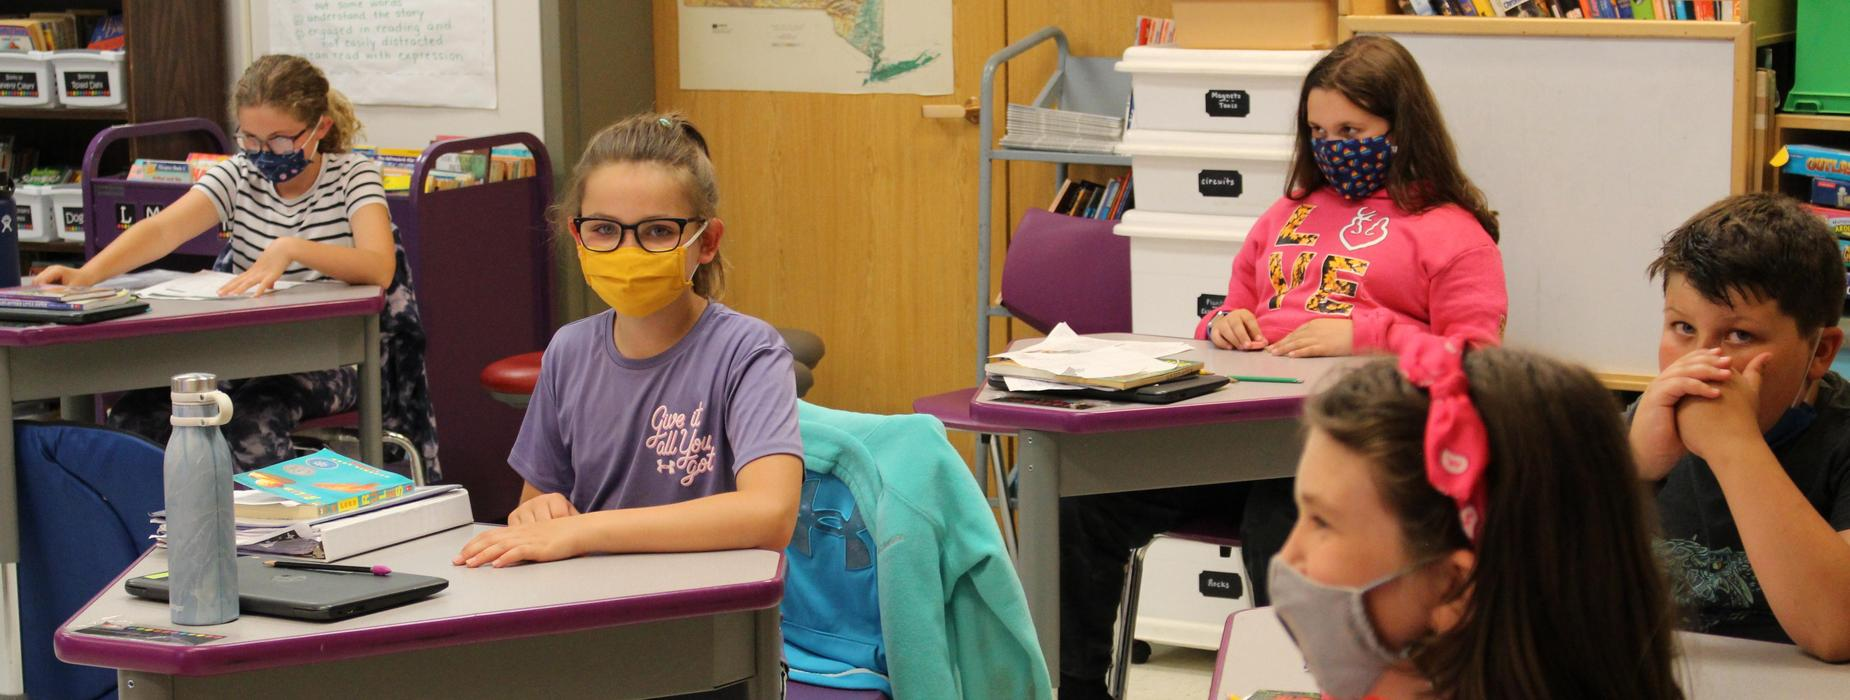 Students working at their desks with masks on